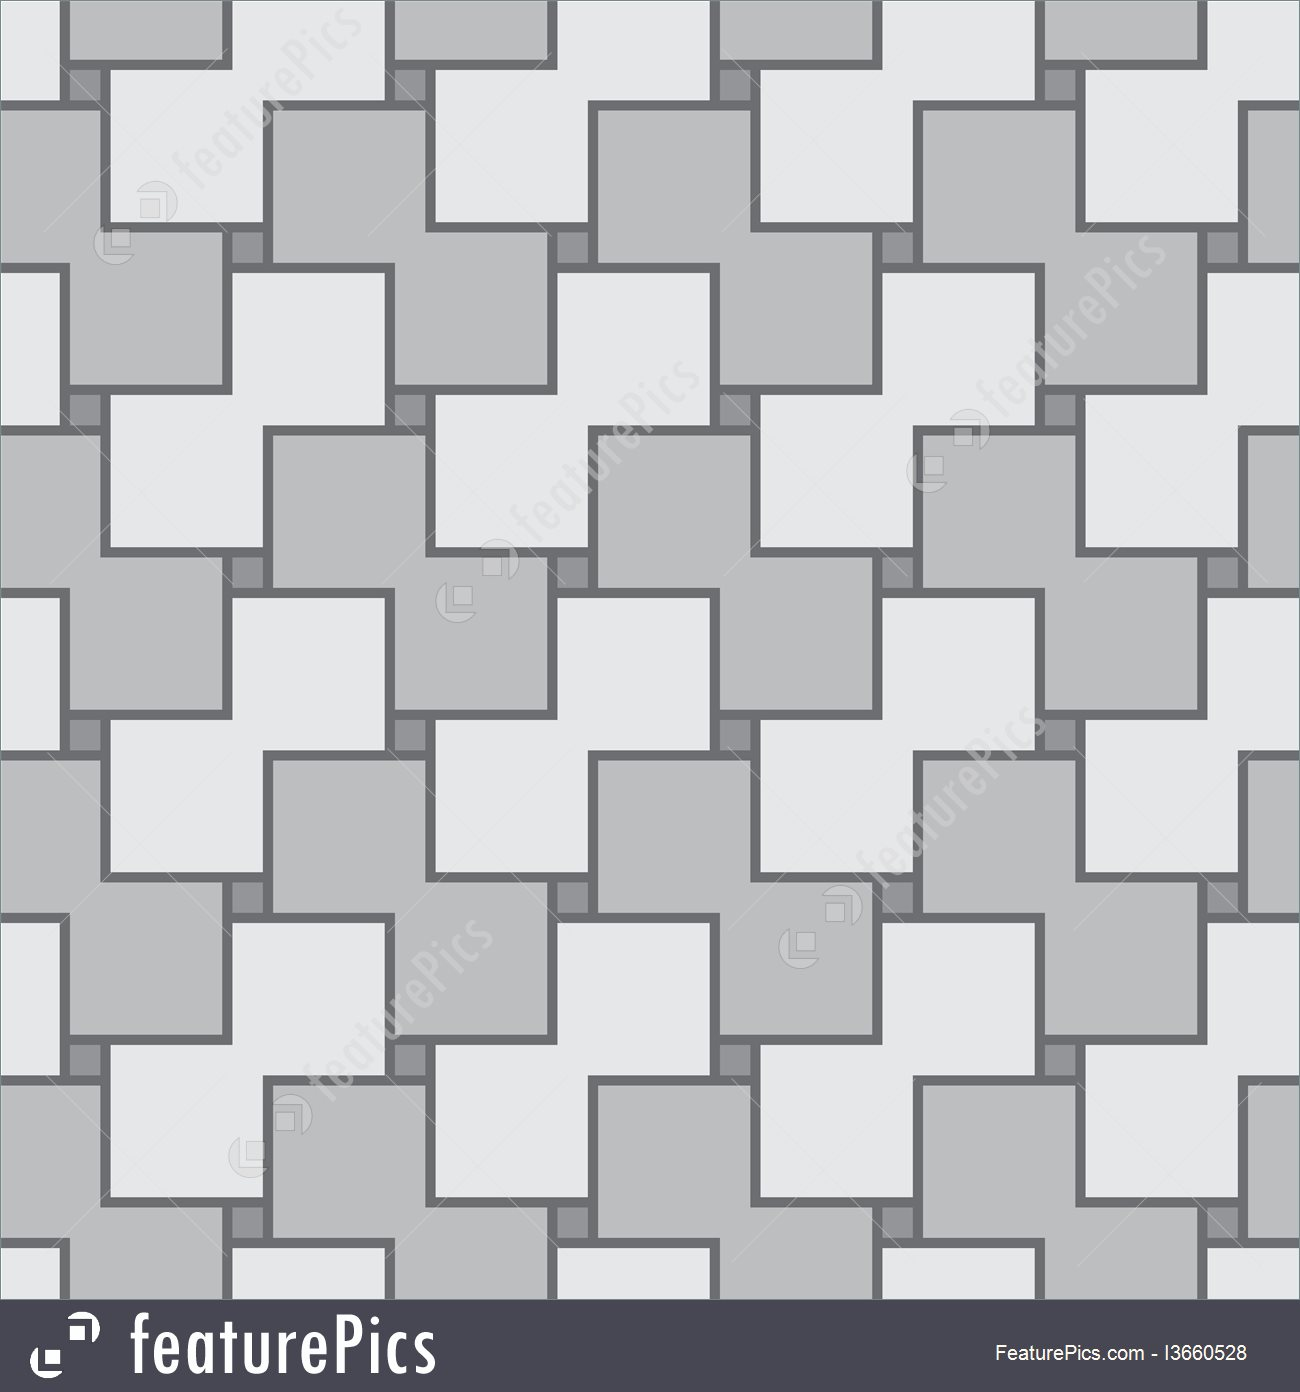 1300x1392 Abstract Patterns Abstract Gray Square Seamless Vector Texture